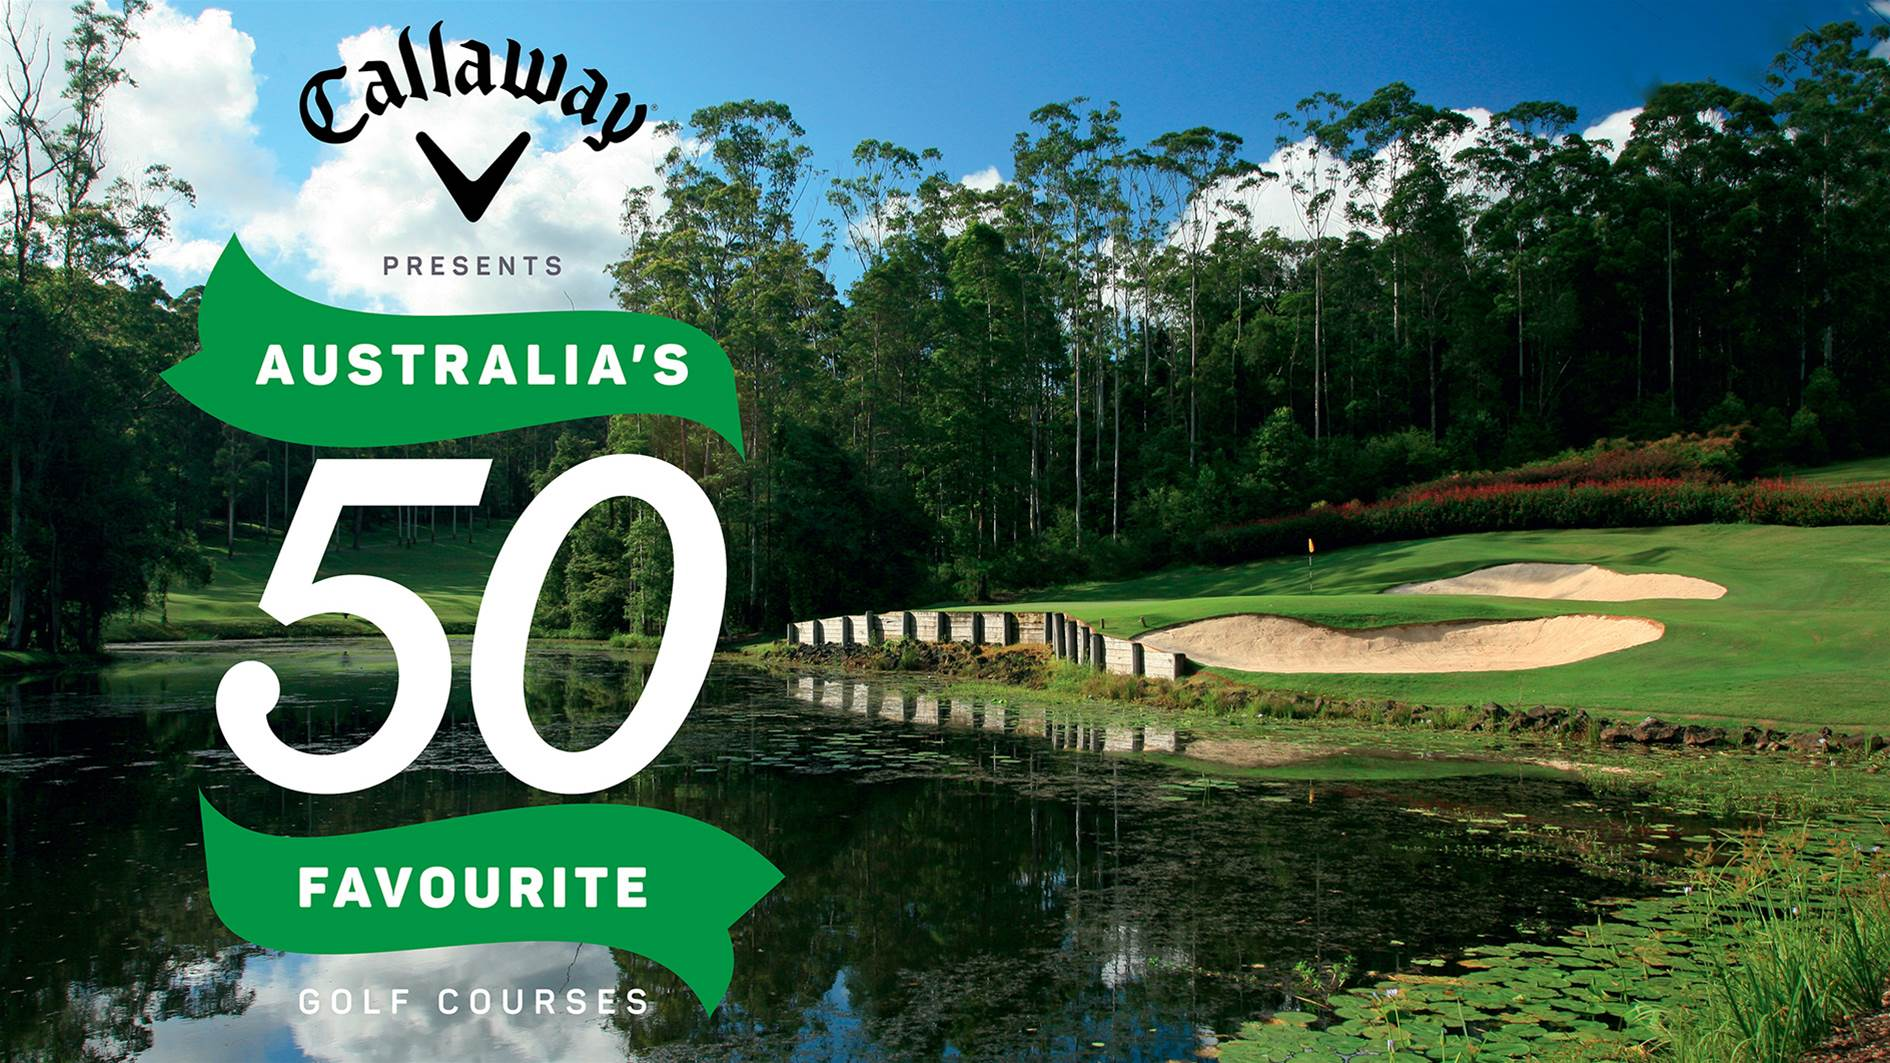 VOTE & WIN! A Callaway gear package worth $5,000